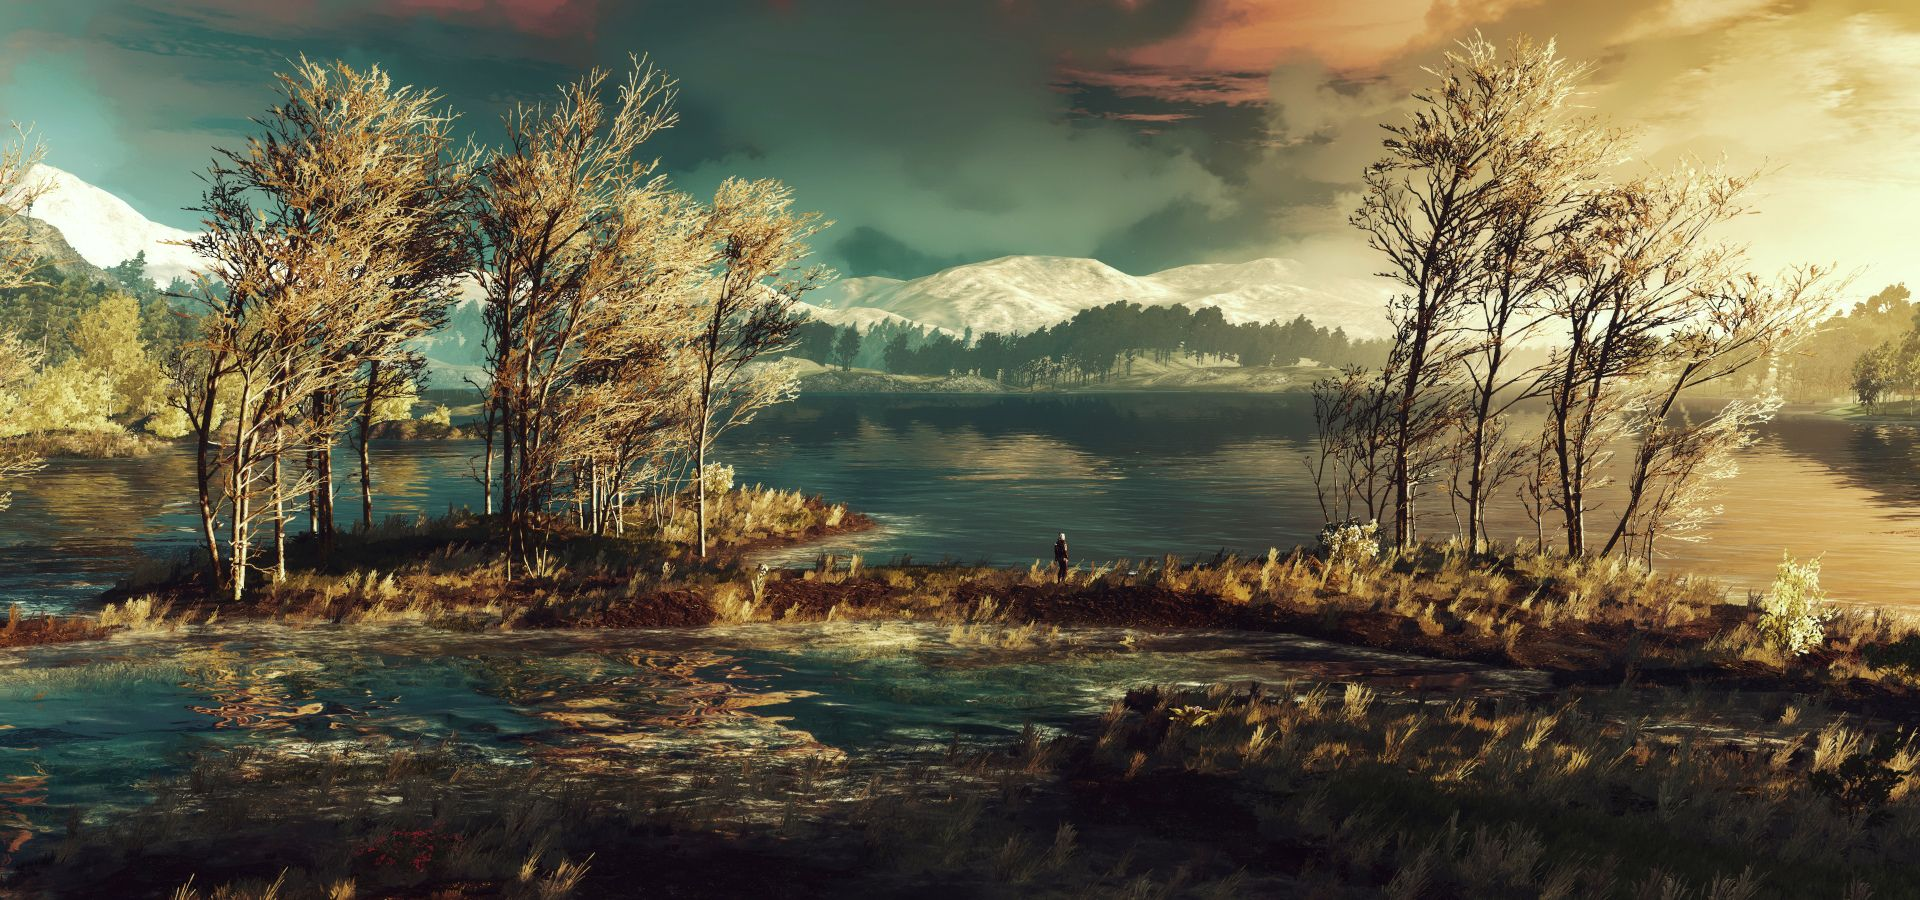 Vídeo Game The Witcher 3: Wild Hunt Papel de Parede | The Witcher